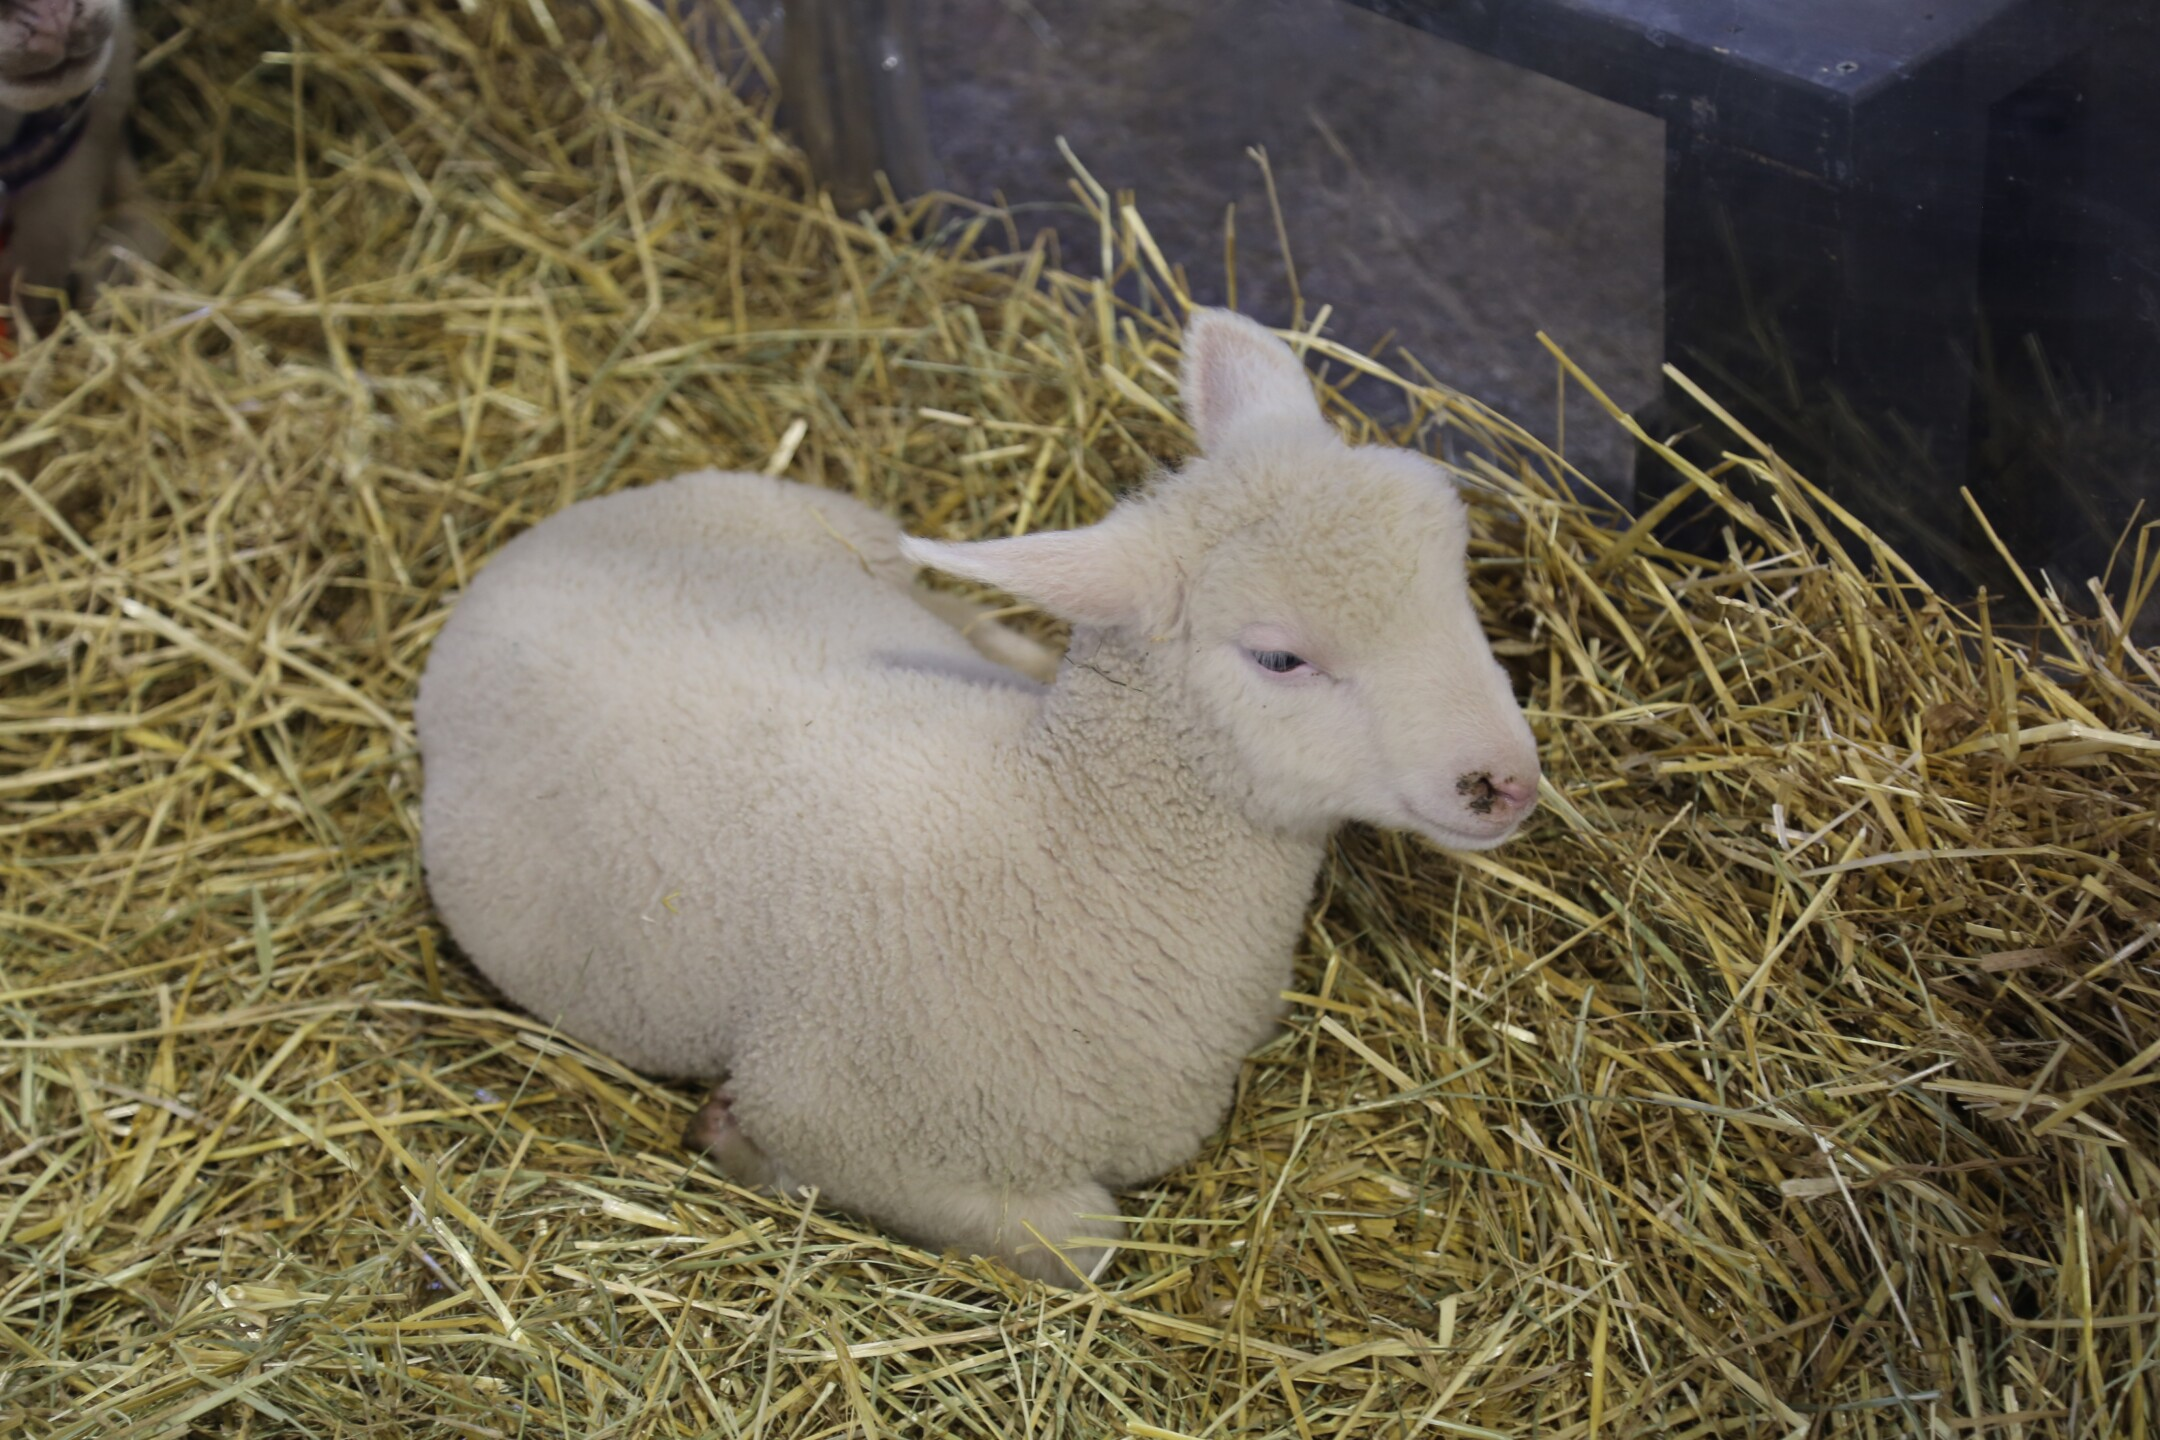 The baby animals of State Fair